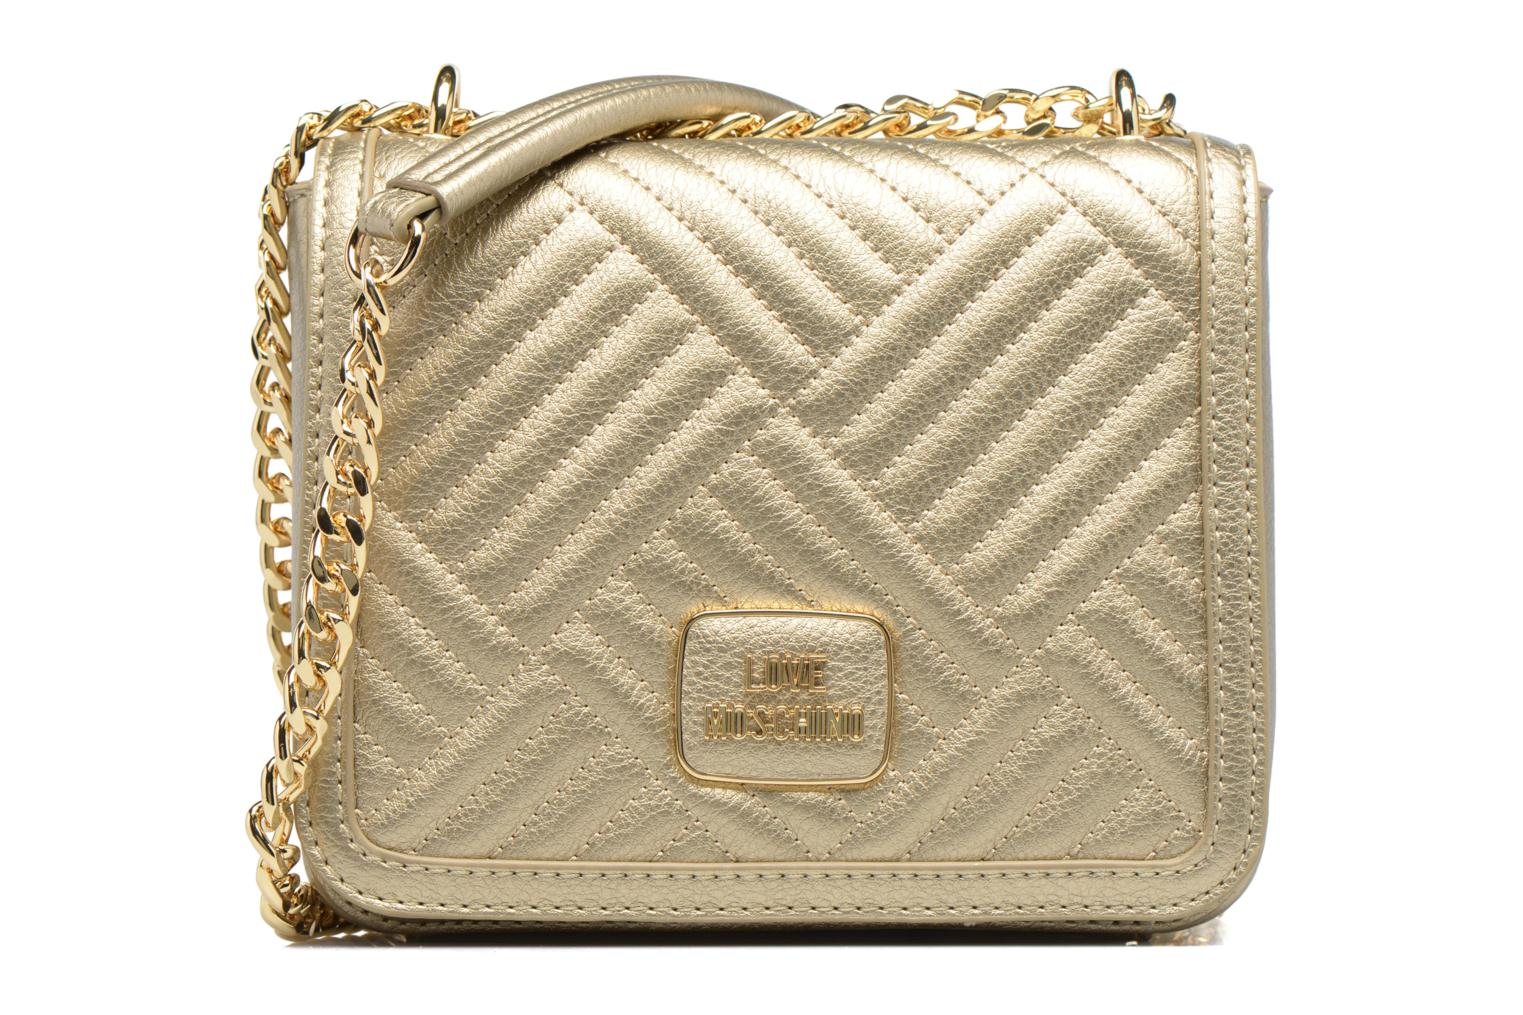 Quilted Moschino Love Shiny Oro Chaine Crossbody qSxw4HY